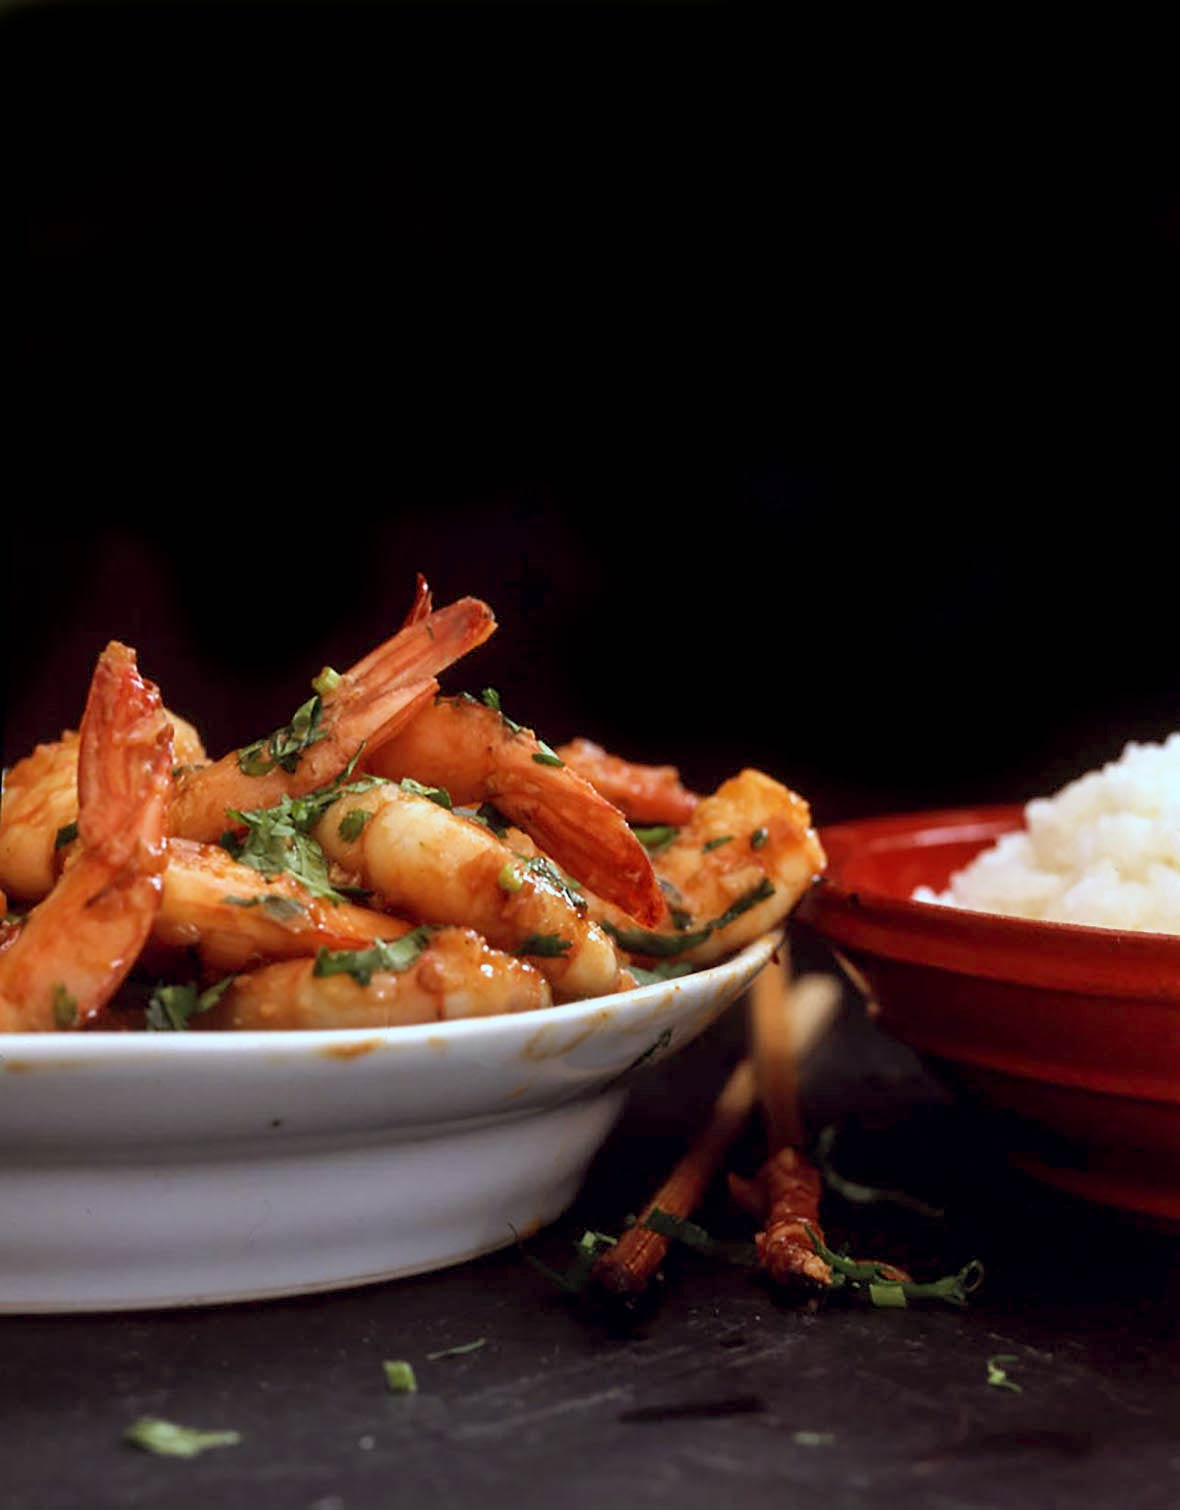 A white bowl piled with spicy shrimp and a red bowl of white rice